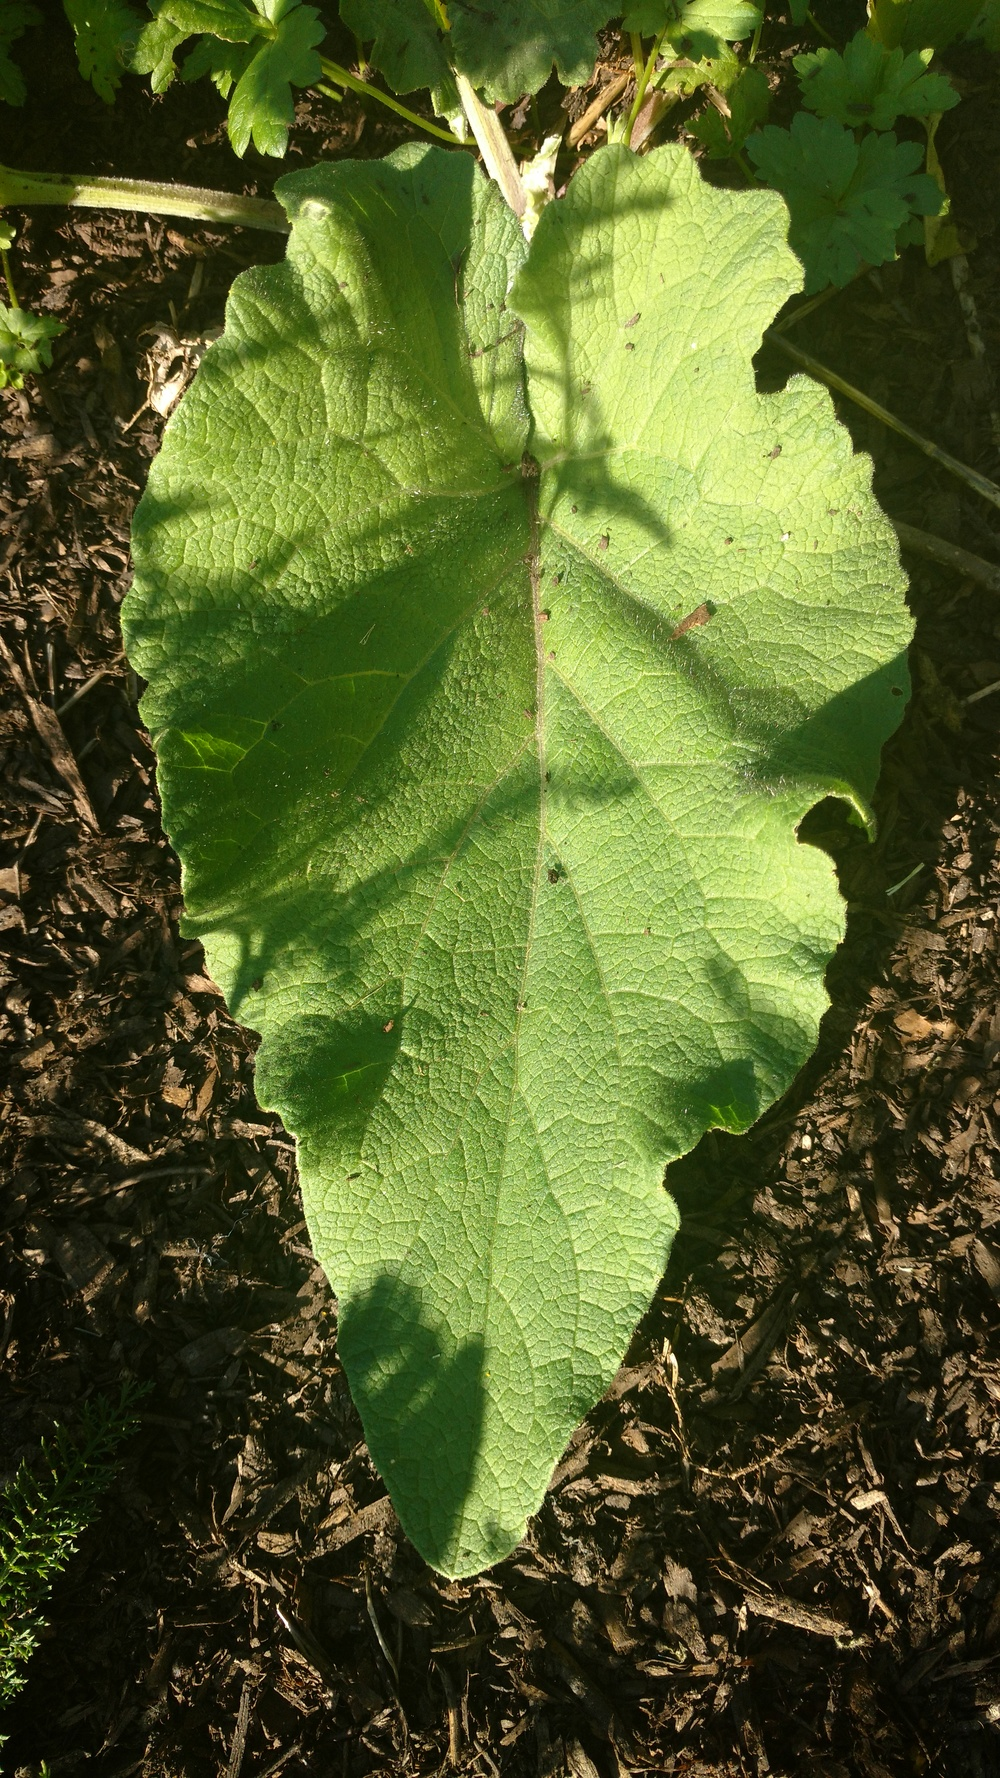 Burdock (Edges oF Leaves Are wavy. The leaf veins also aren't as pronounced)